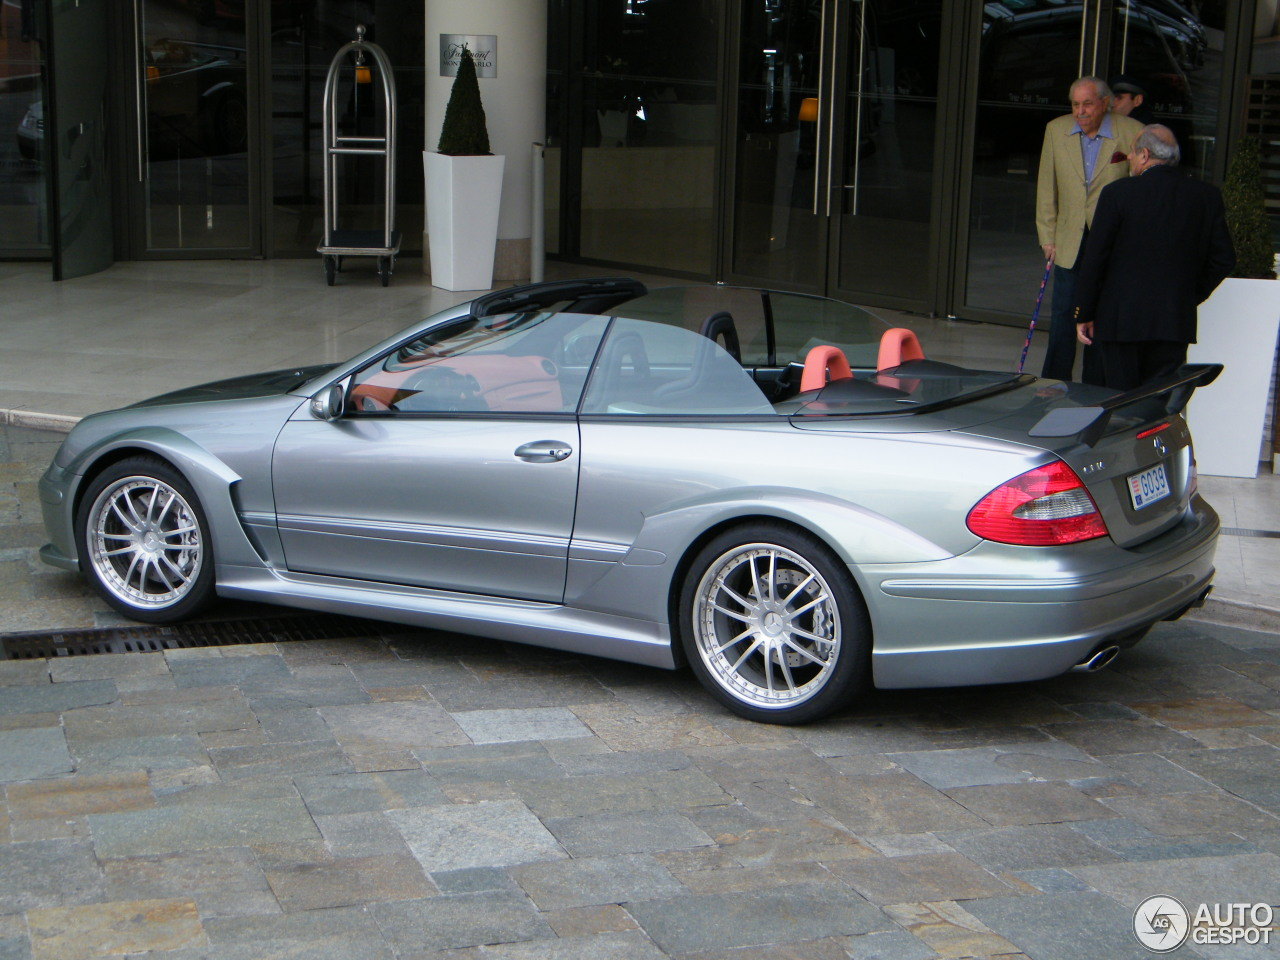 Mercedes benz clk dtm amg cabriolet 22 maart 2013 for Mercedes benz clk 2012